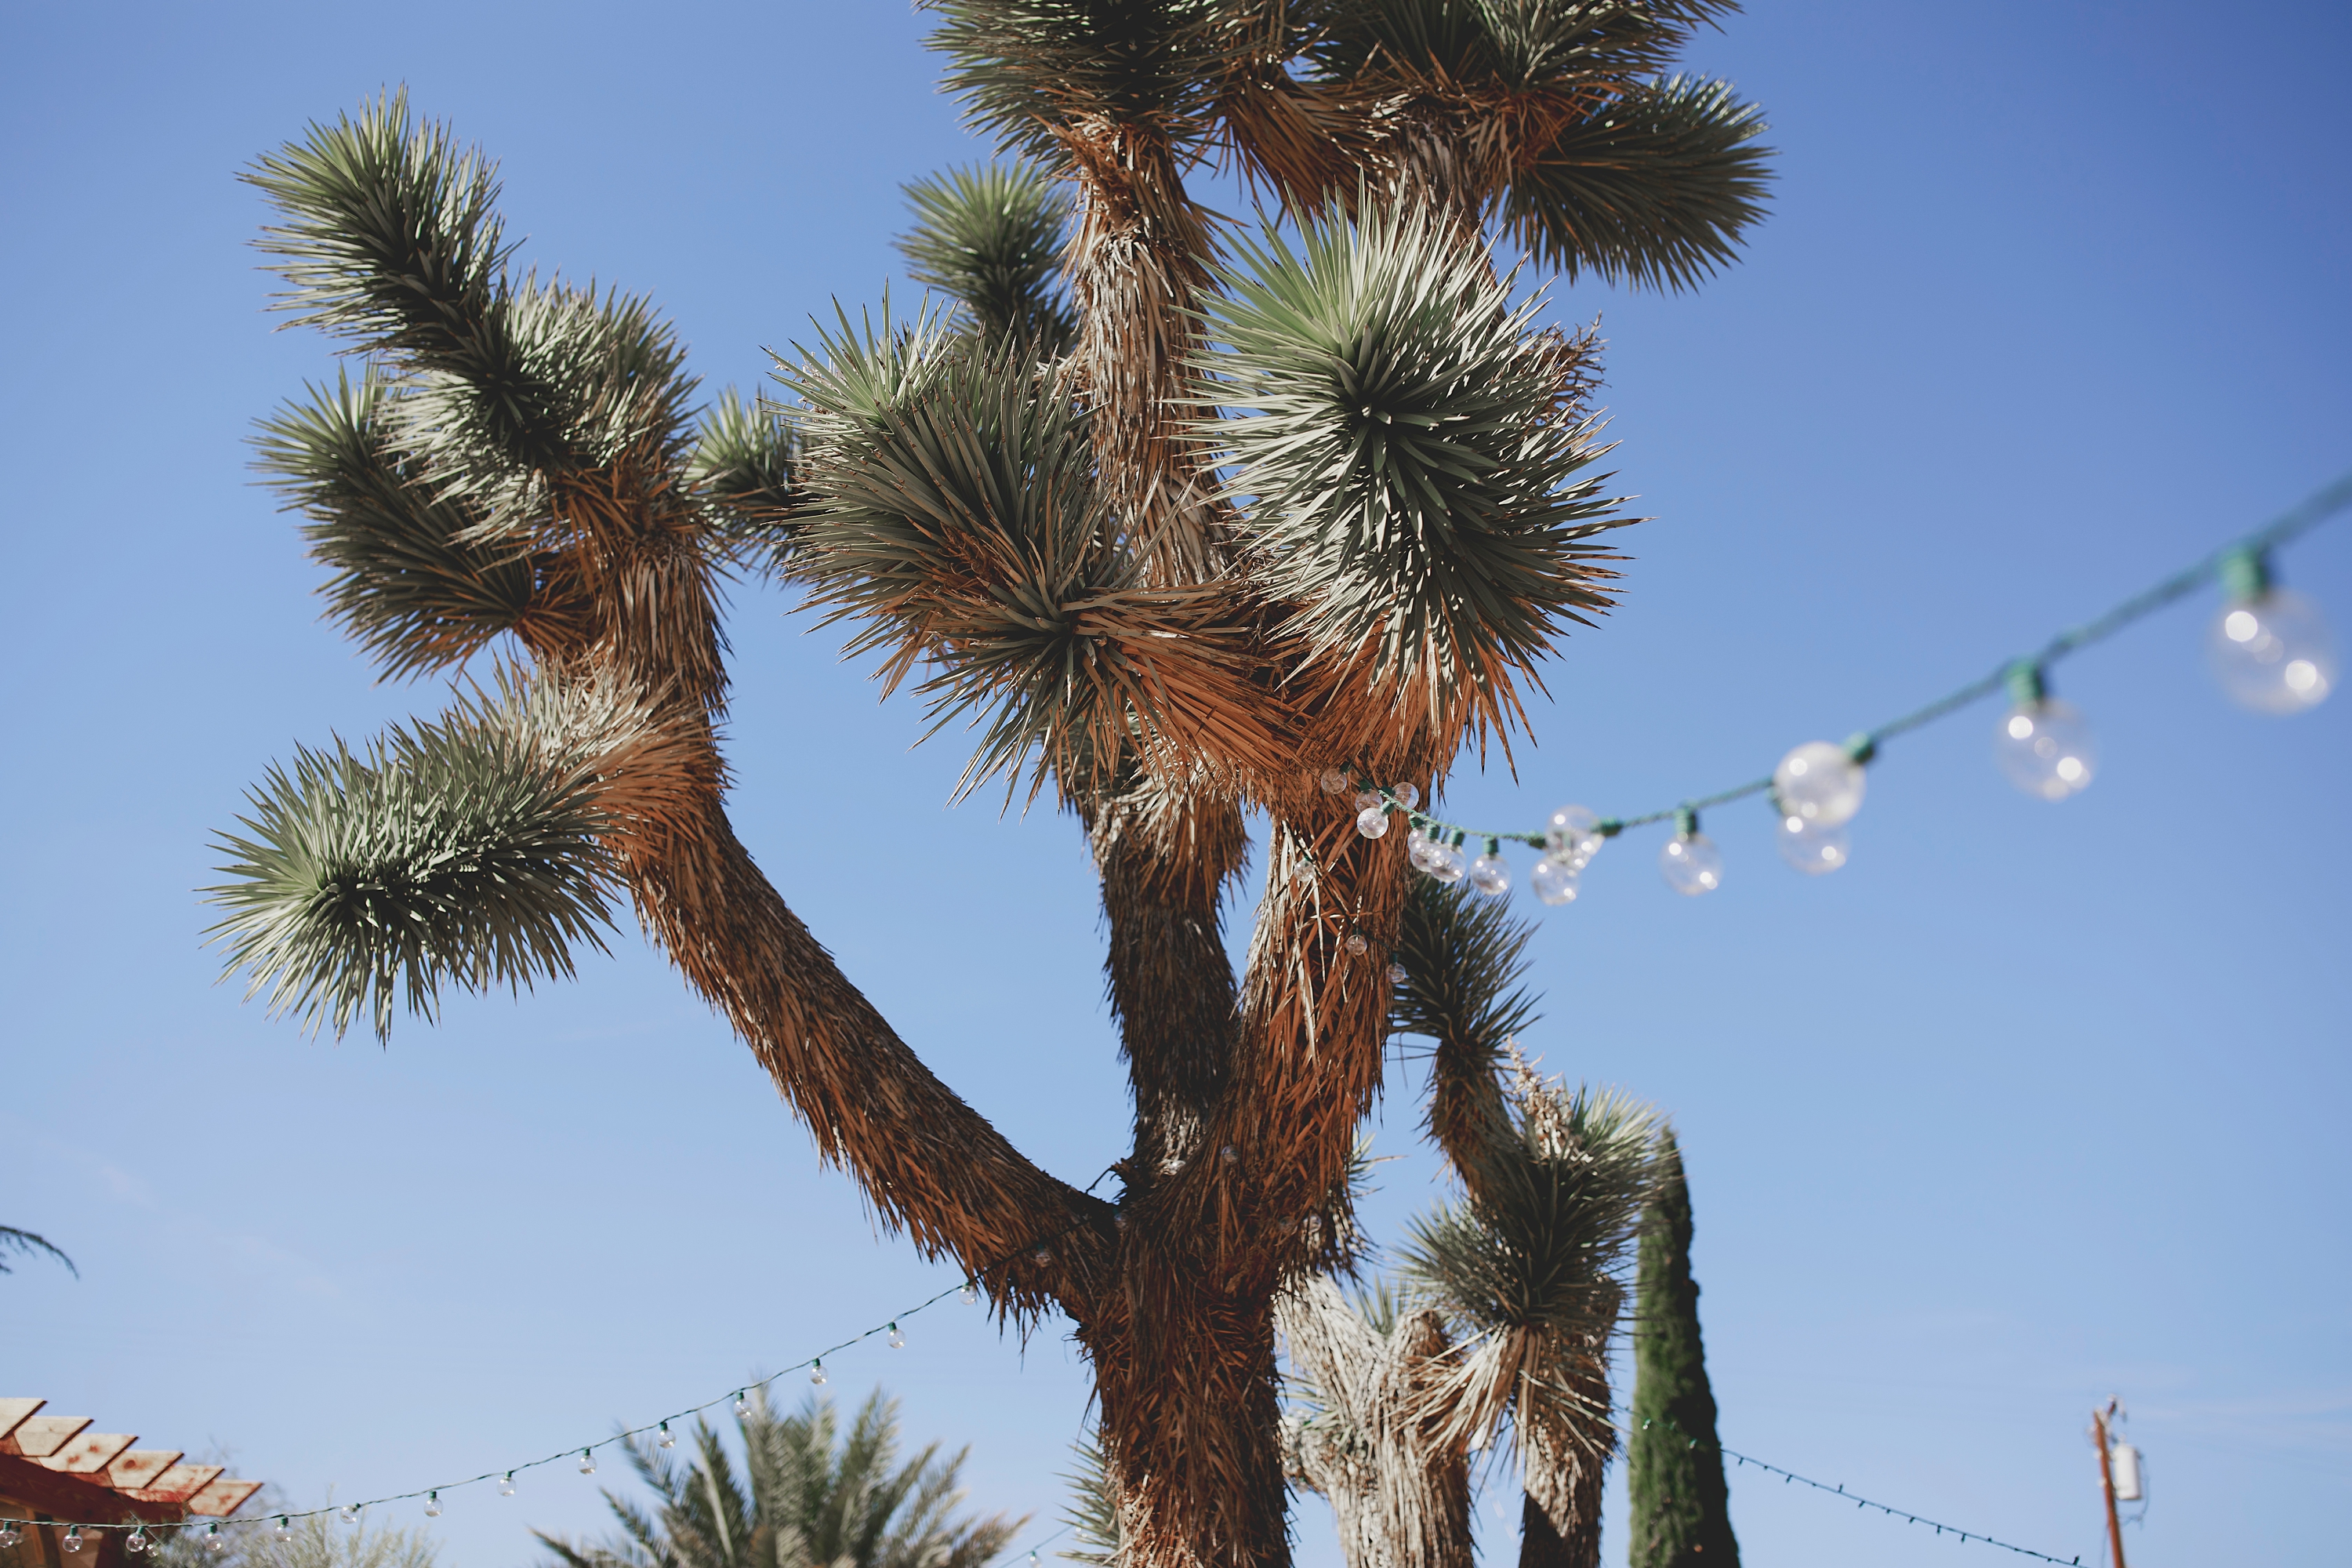 amanda_vanvels_joshua_tree_inn_wedding_014.jpg